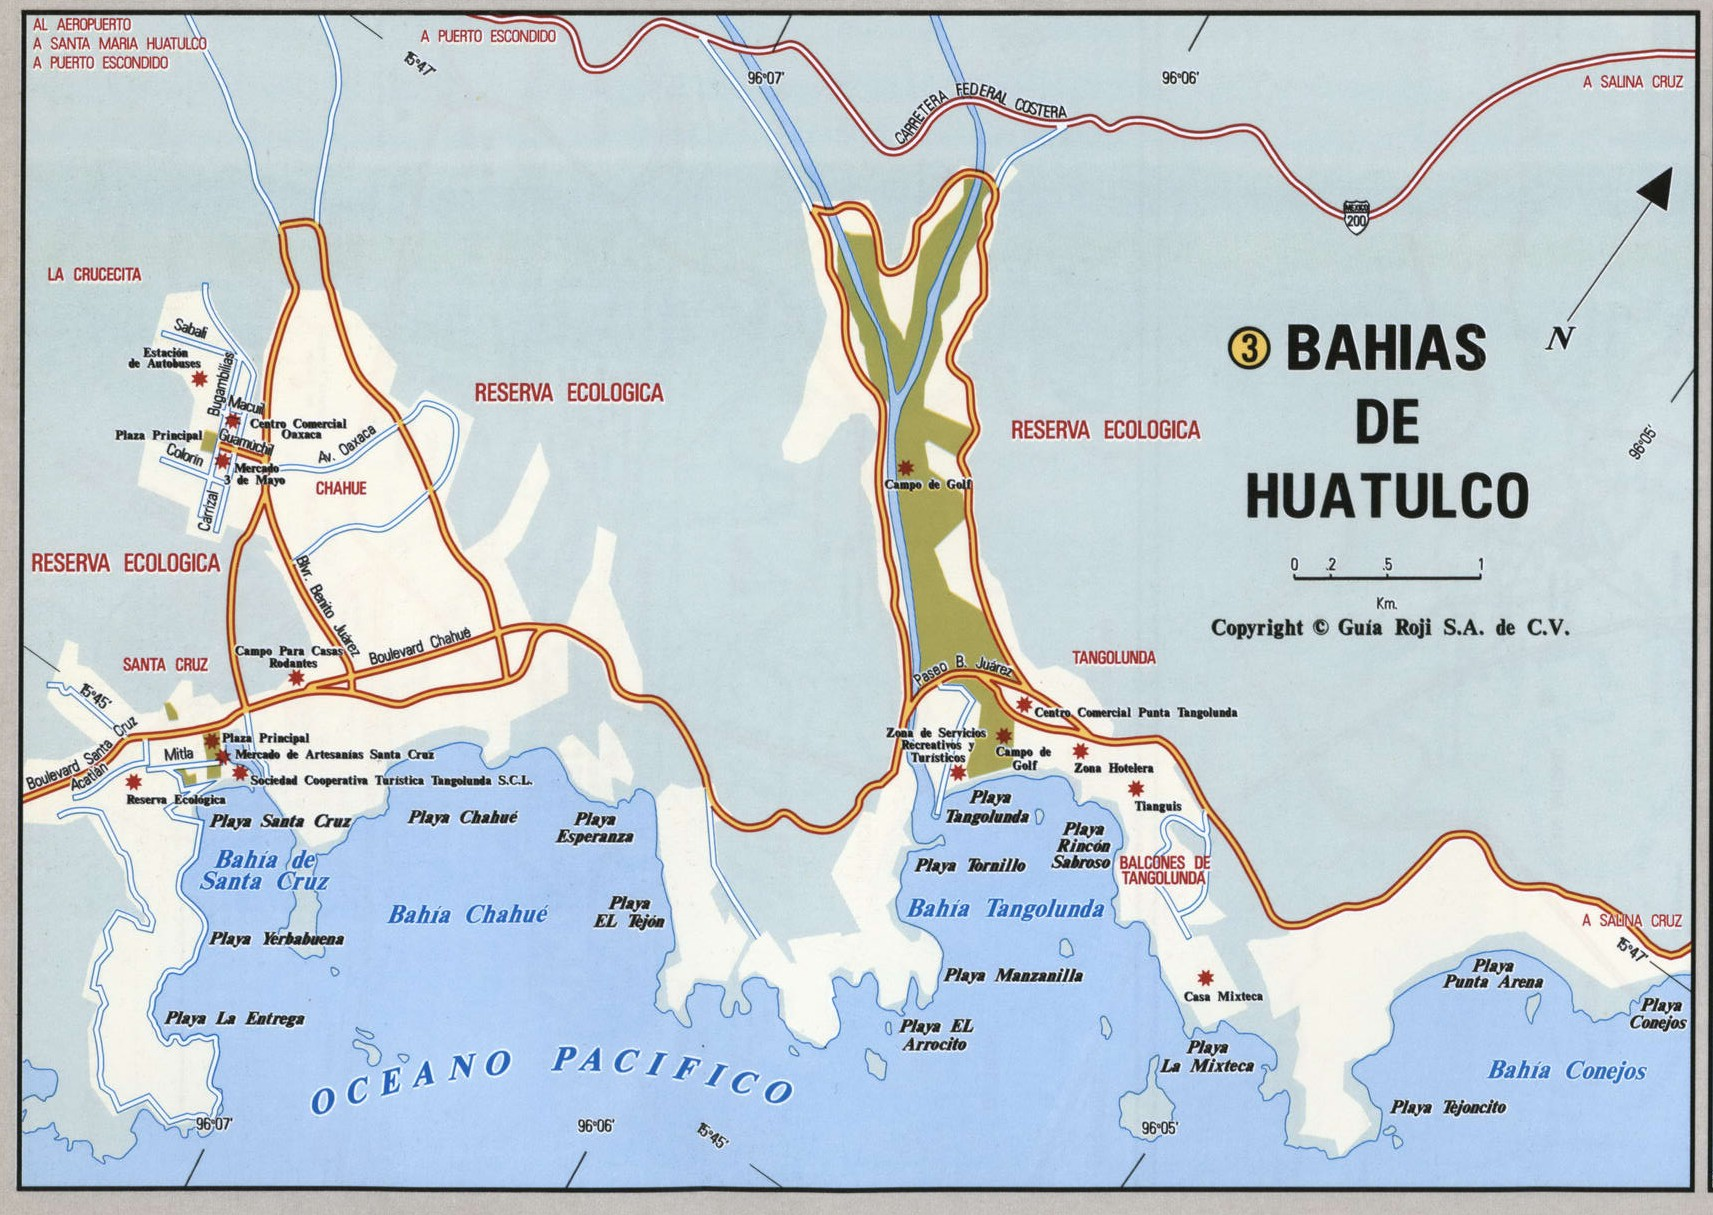 Bahias de Huatulco city map